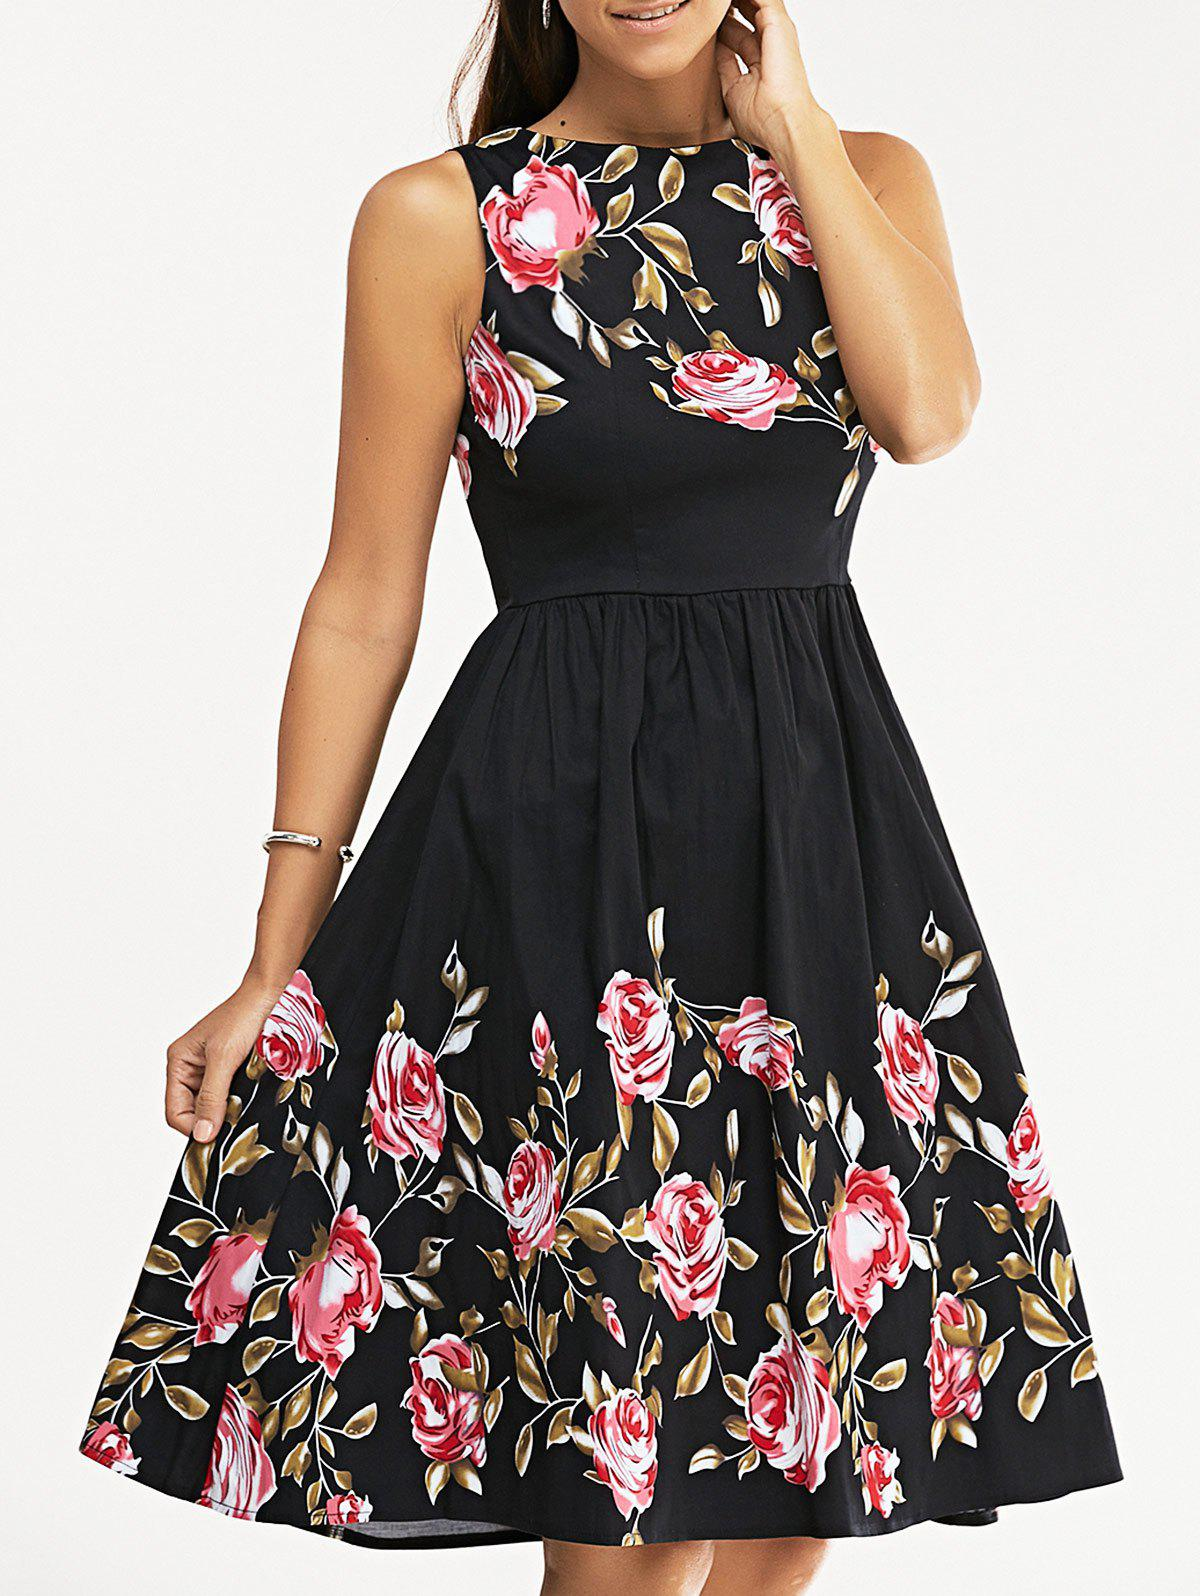 Retro Rose Flower Print Sleeveless Skater Dress - BLACK 2XL